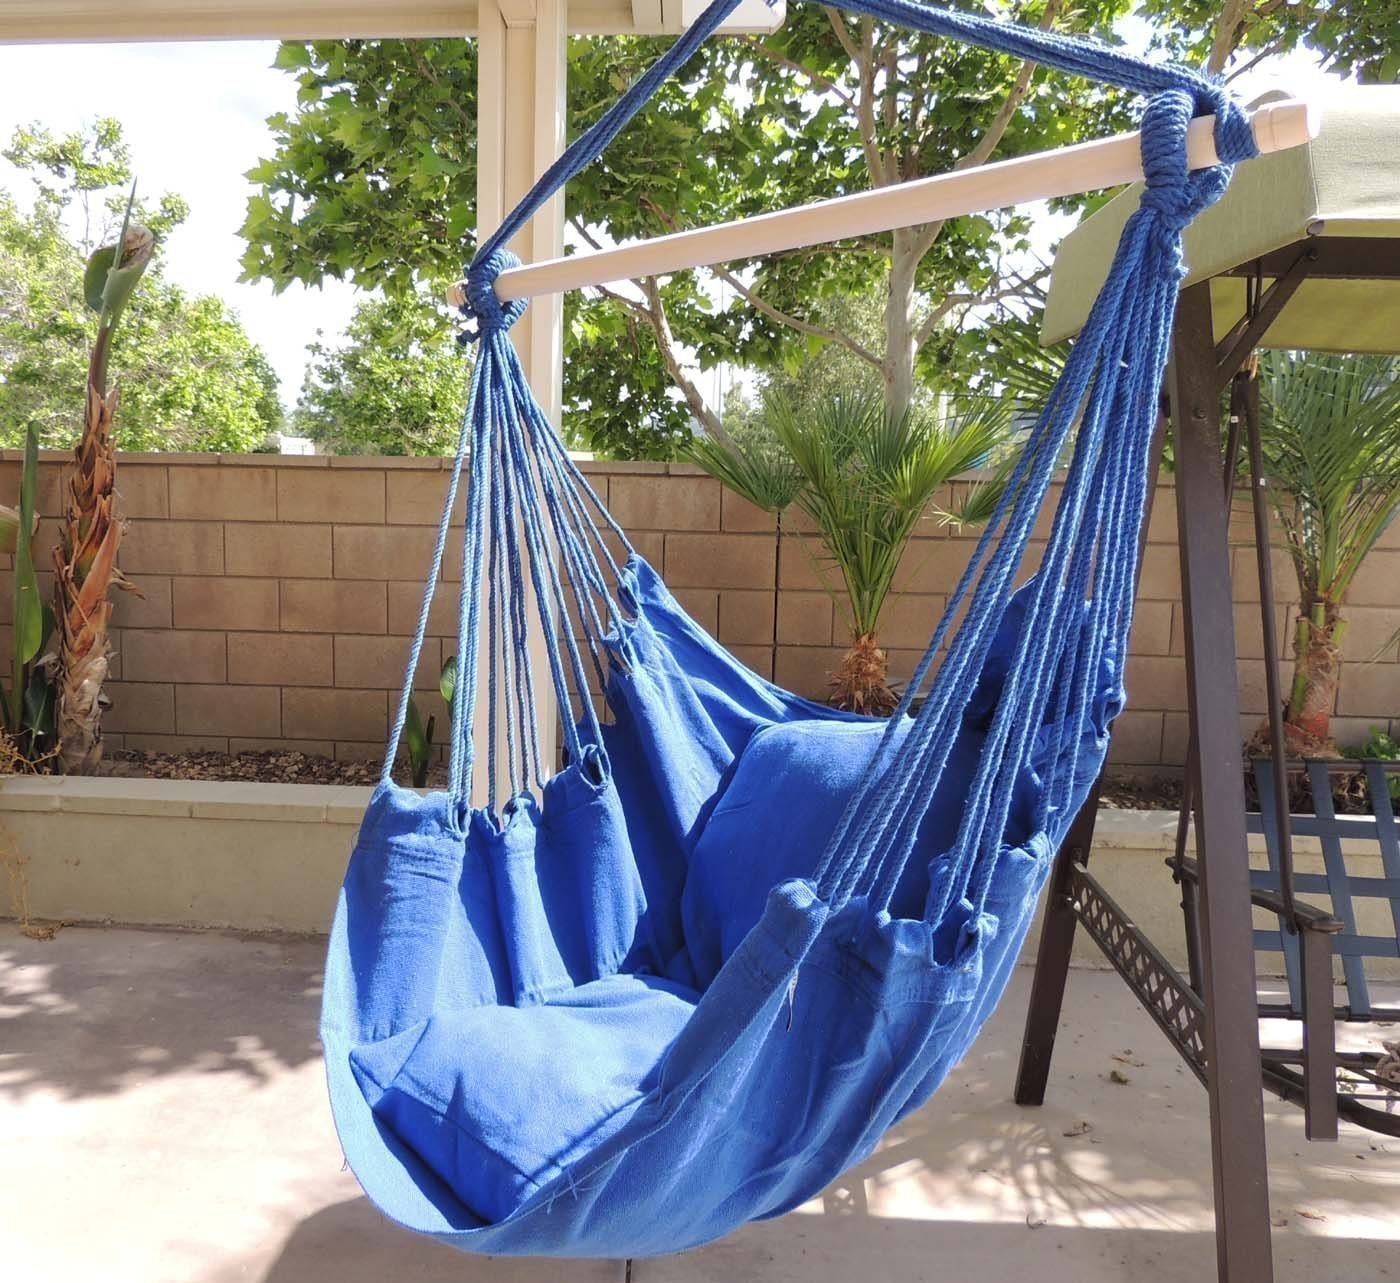 Get Quotations · Hammock Chair Hanging Rope Chair Porch Swing Outdoor  Chairs Lounge Camp Seat At Patio Lawn Garden